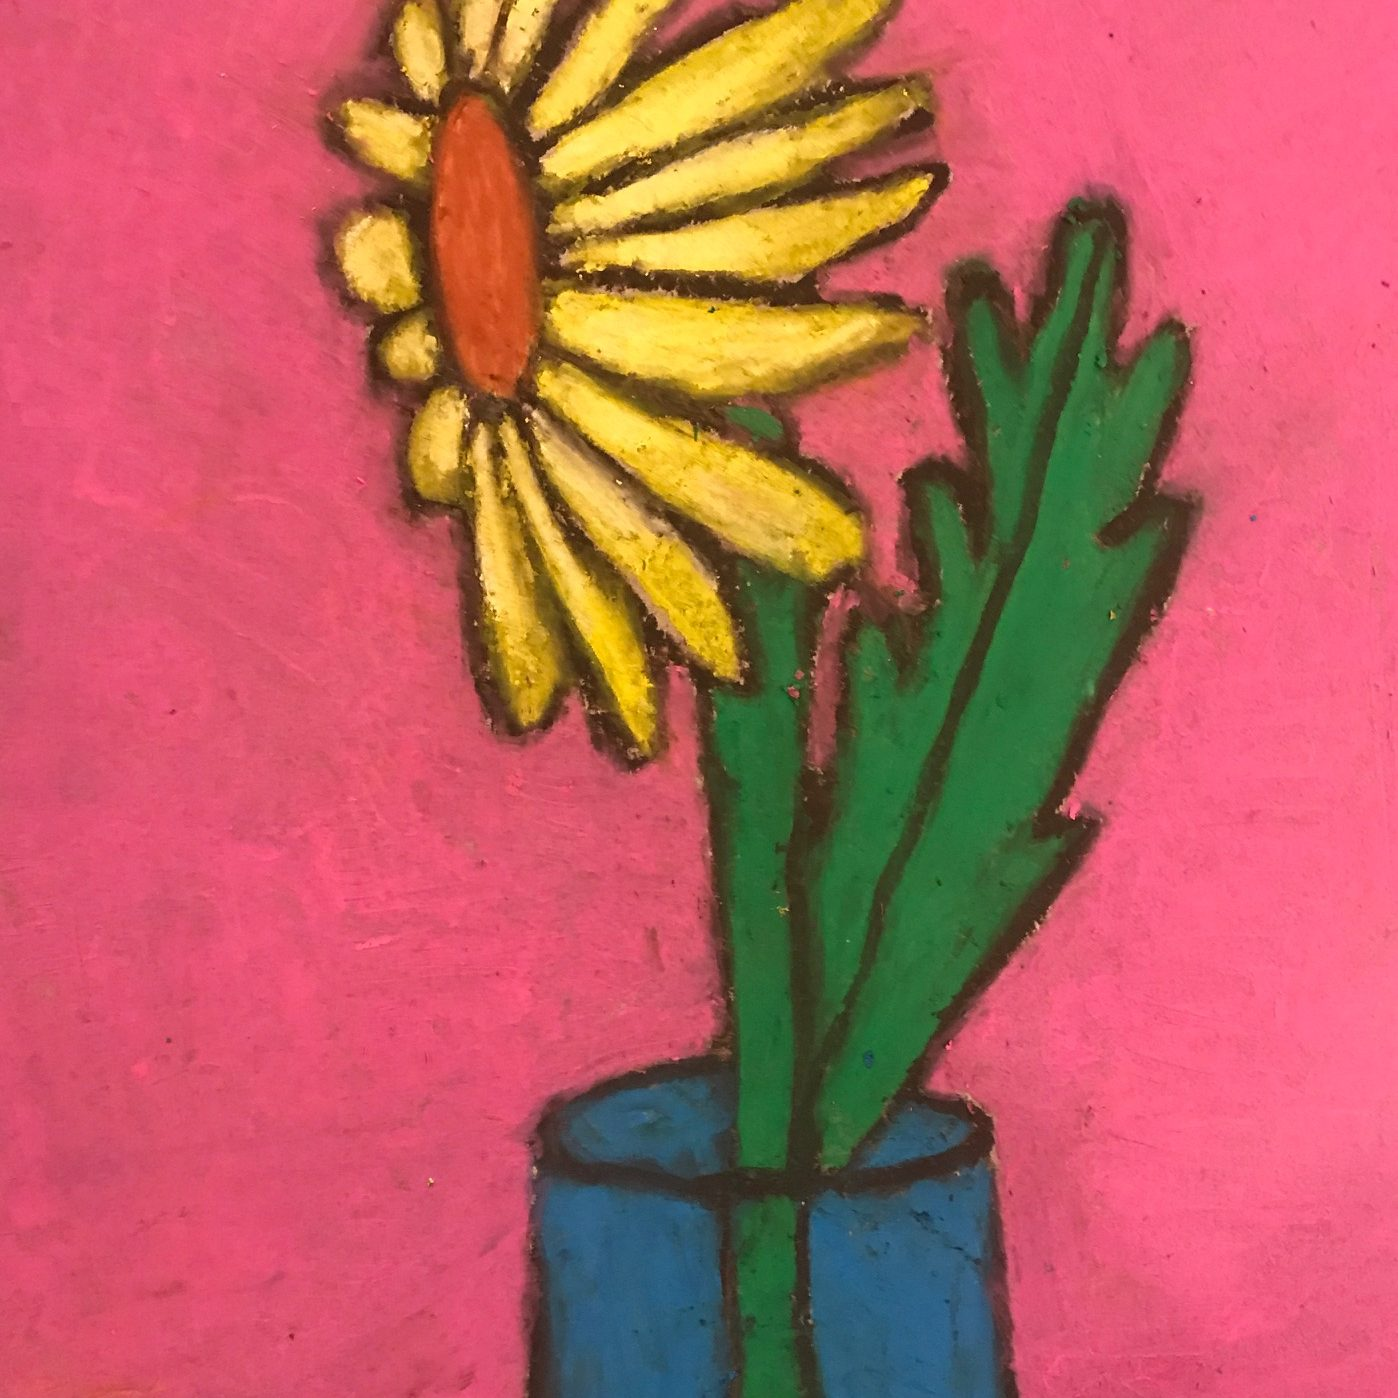 Oil pastel drawing of a yellow sunflower in a blue vase with a bright pink background